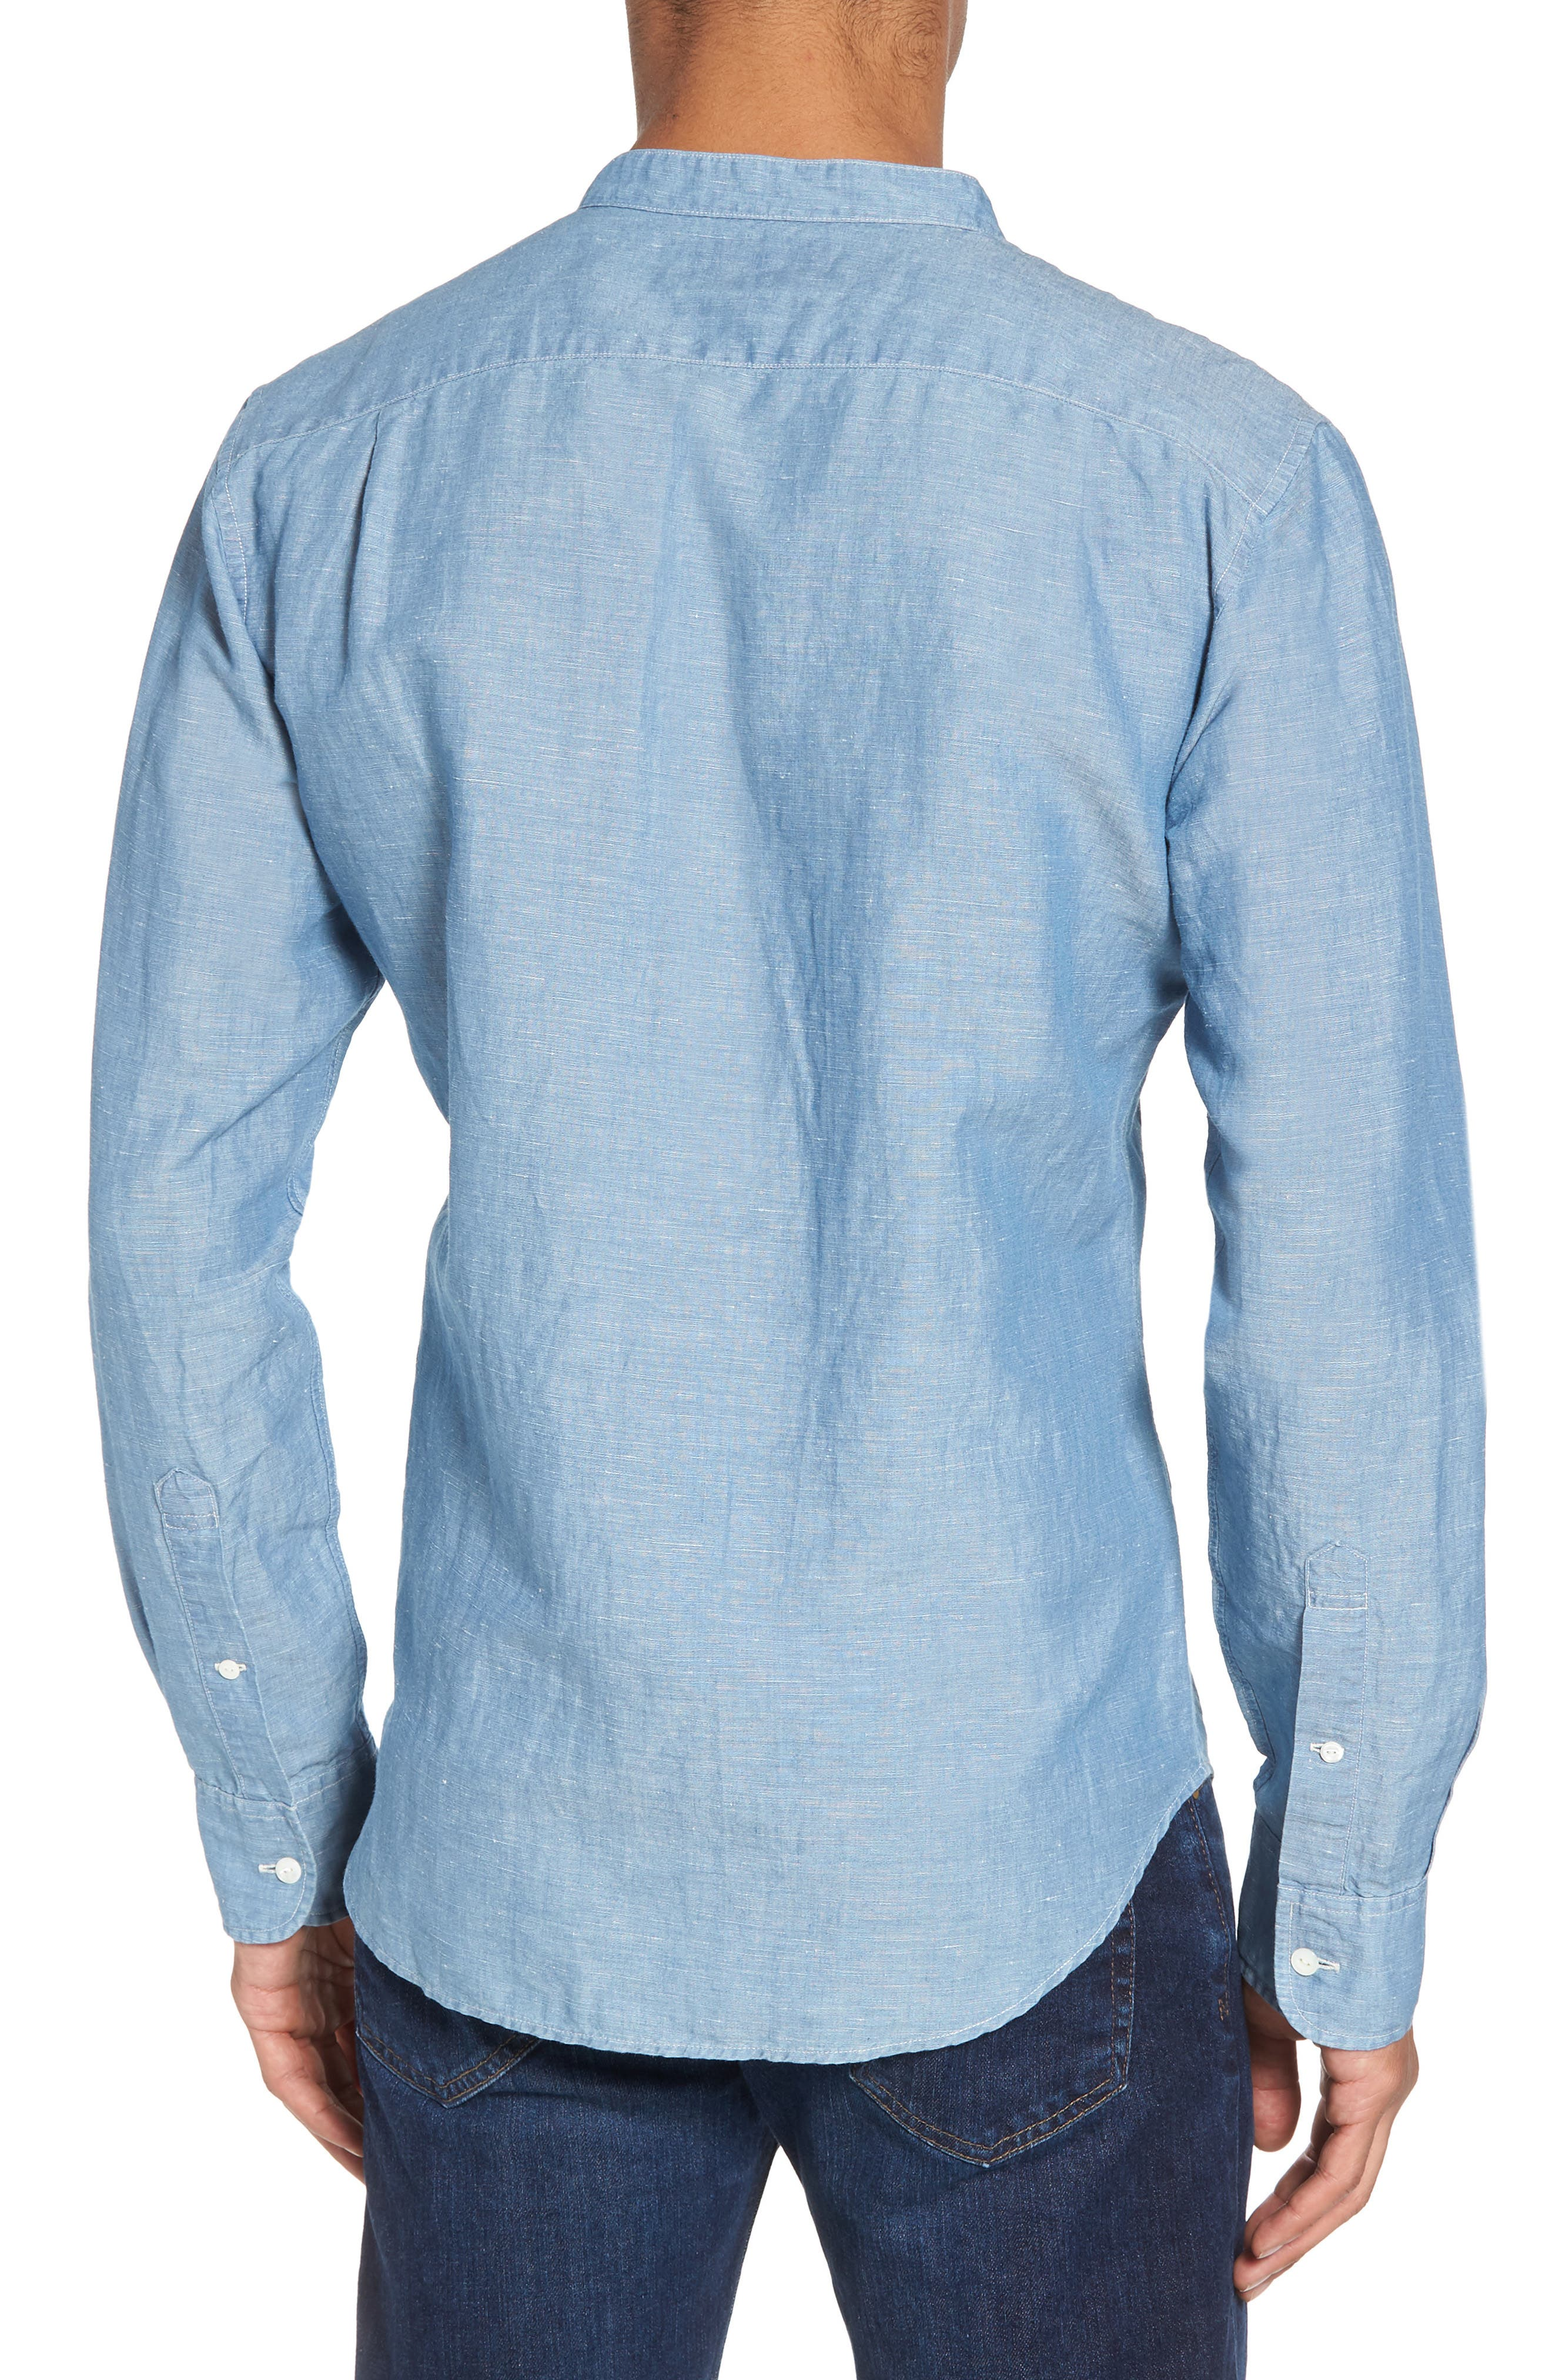 Trim Fit Chambray Sport Shirt,                             Alternate thumbnail 2, color,                             Chambray Bleach Wash